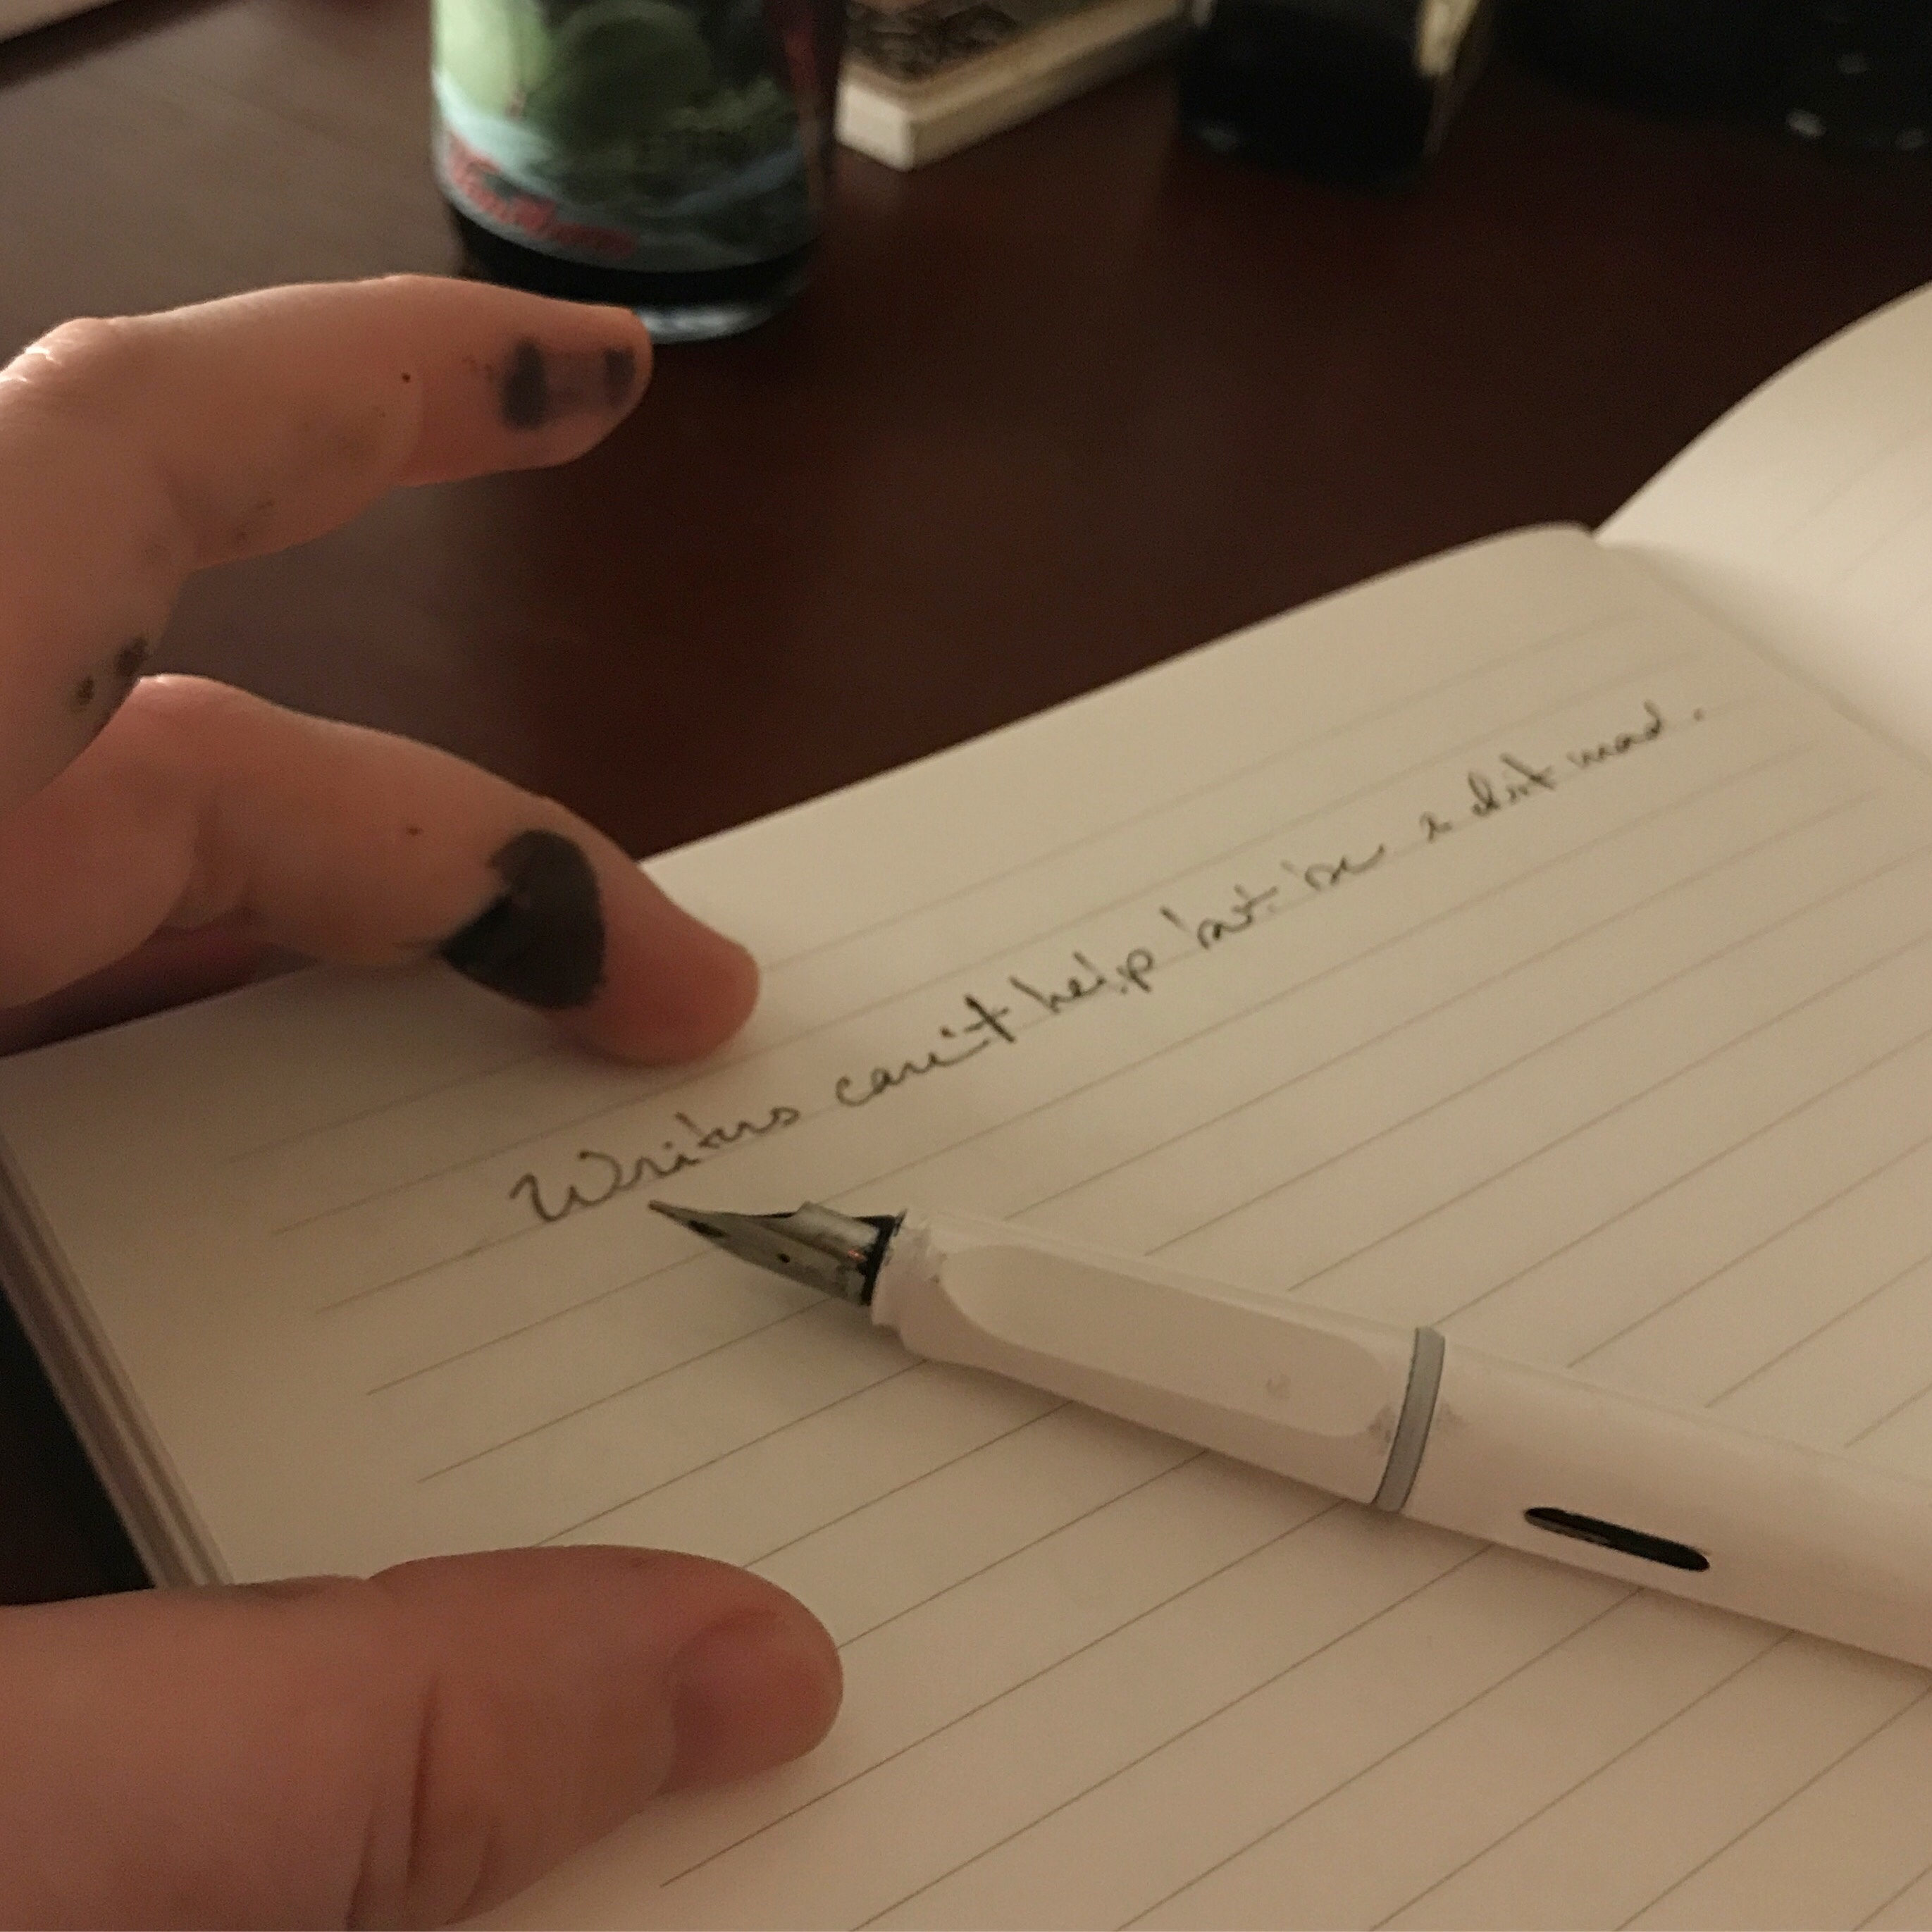 On Not Writing and Beyond